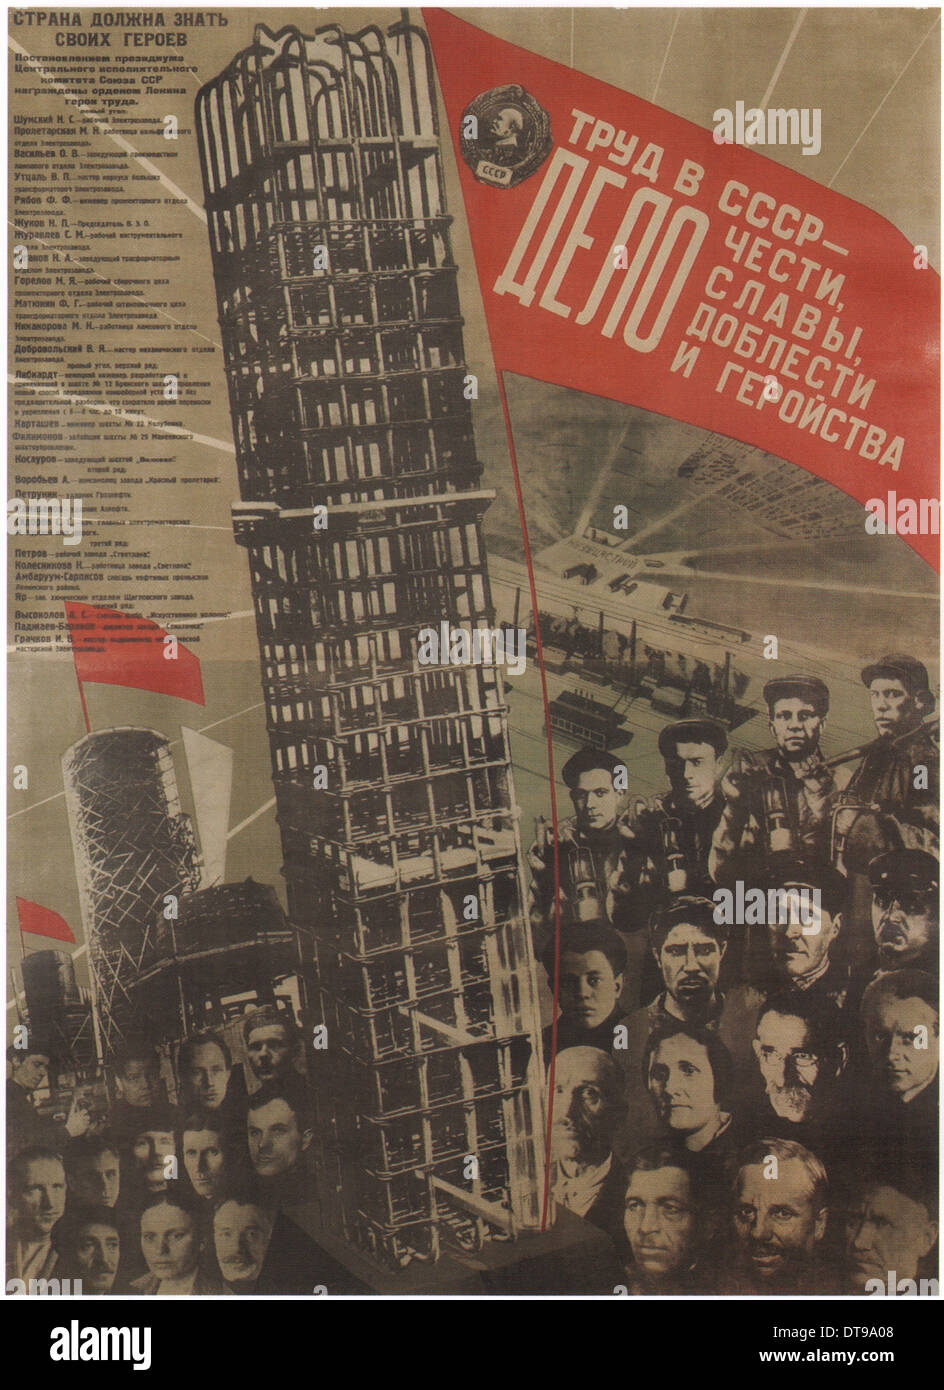 Work in the USSR is a matter of honour, glory, sacrifice and heroism, 1931. Artist: Klutsis, Gustav (1895-1938) - Stock Image